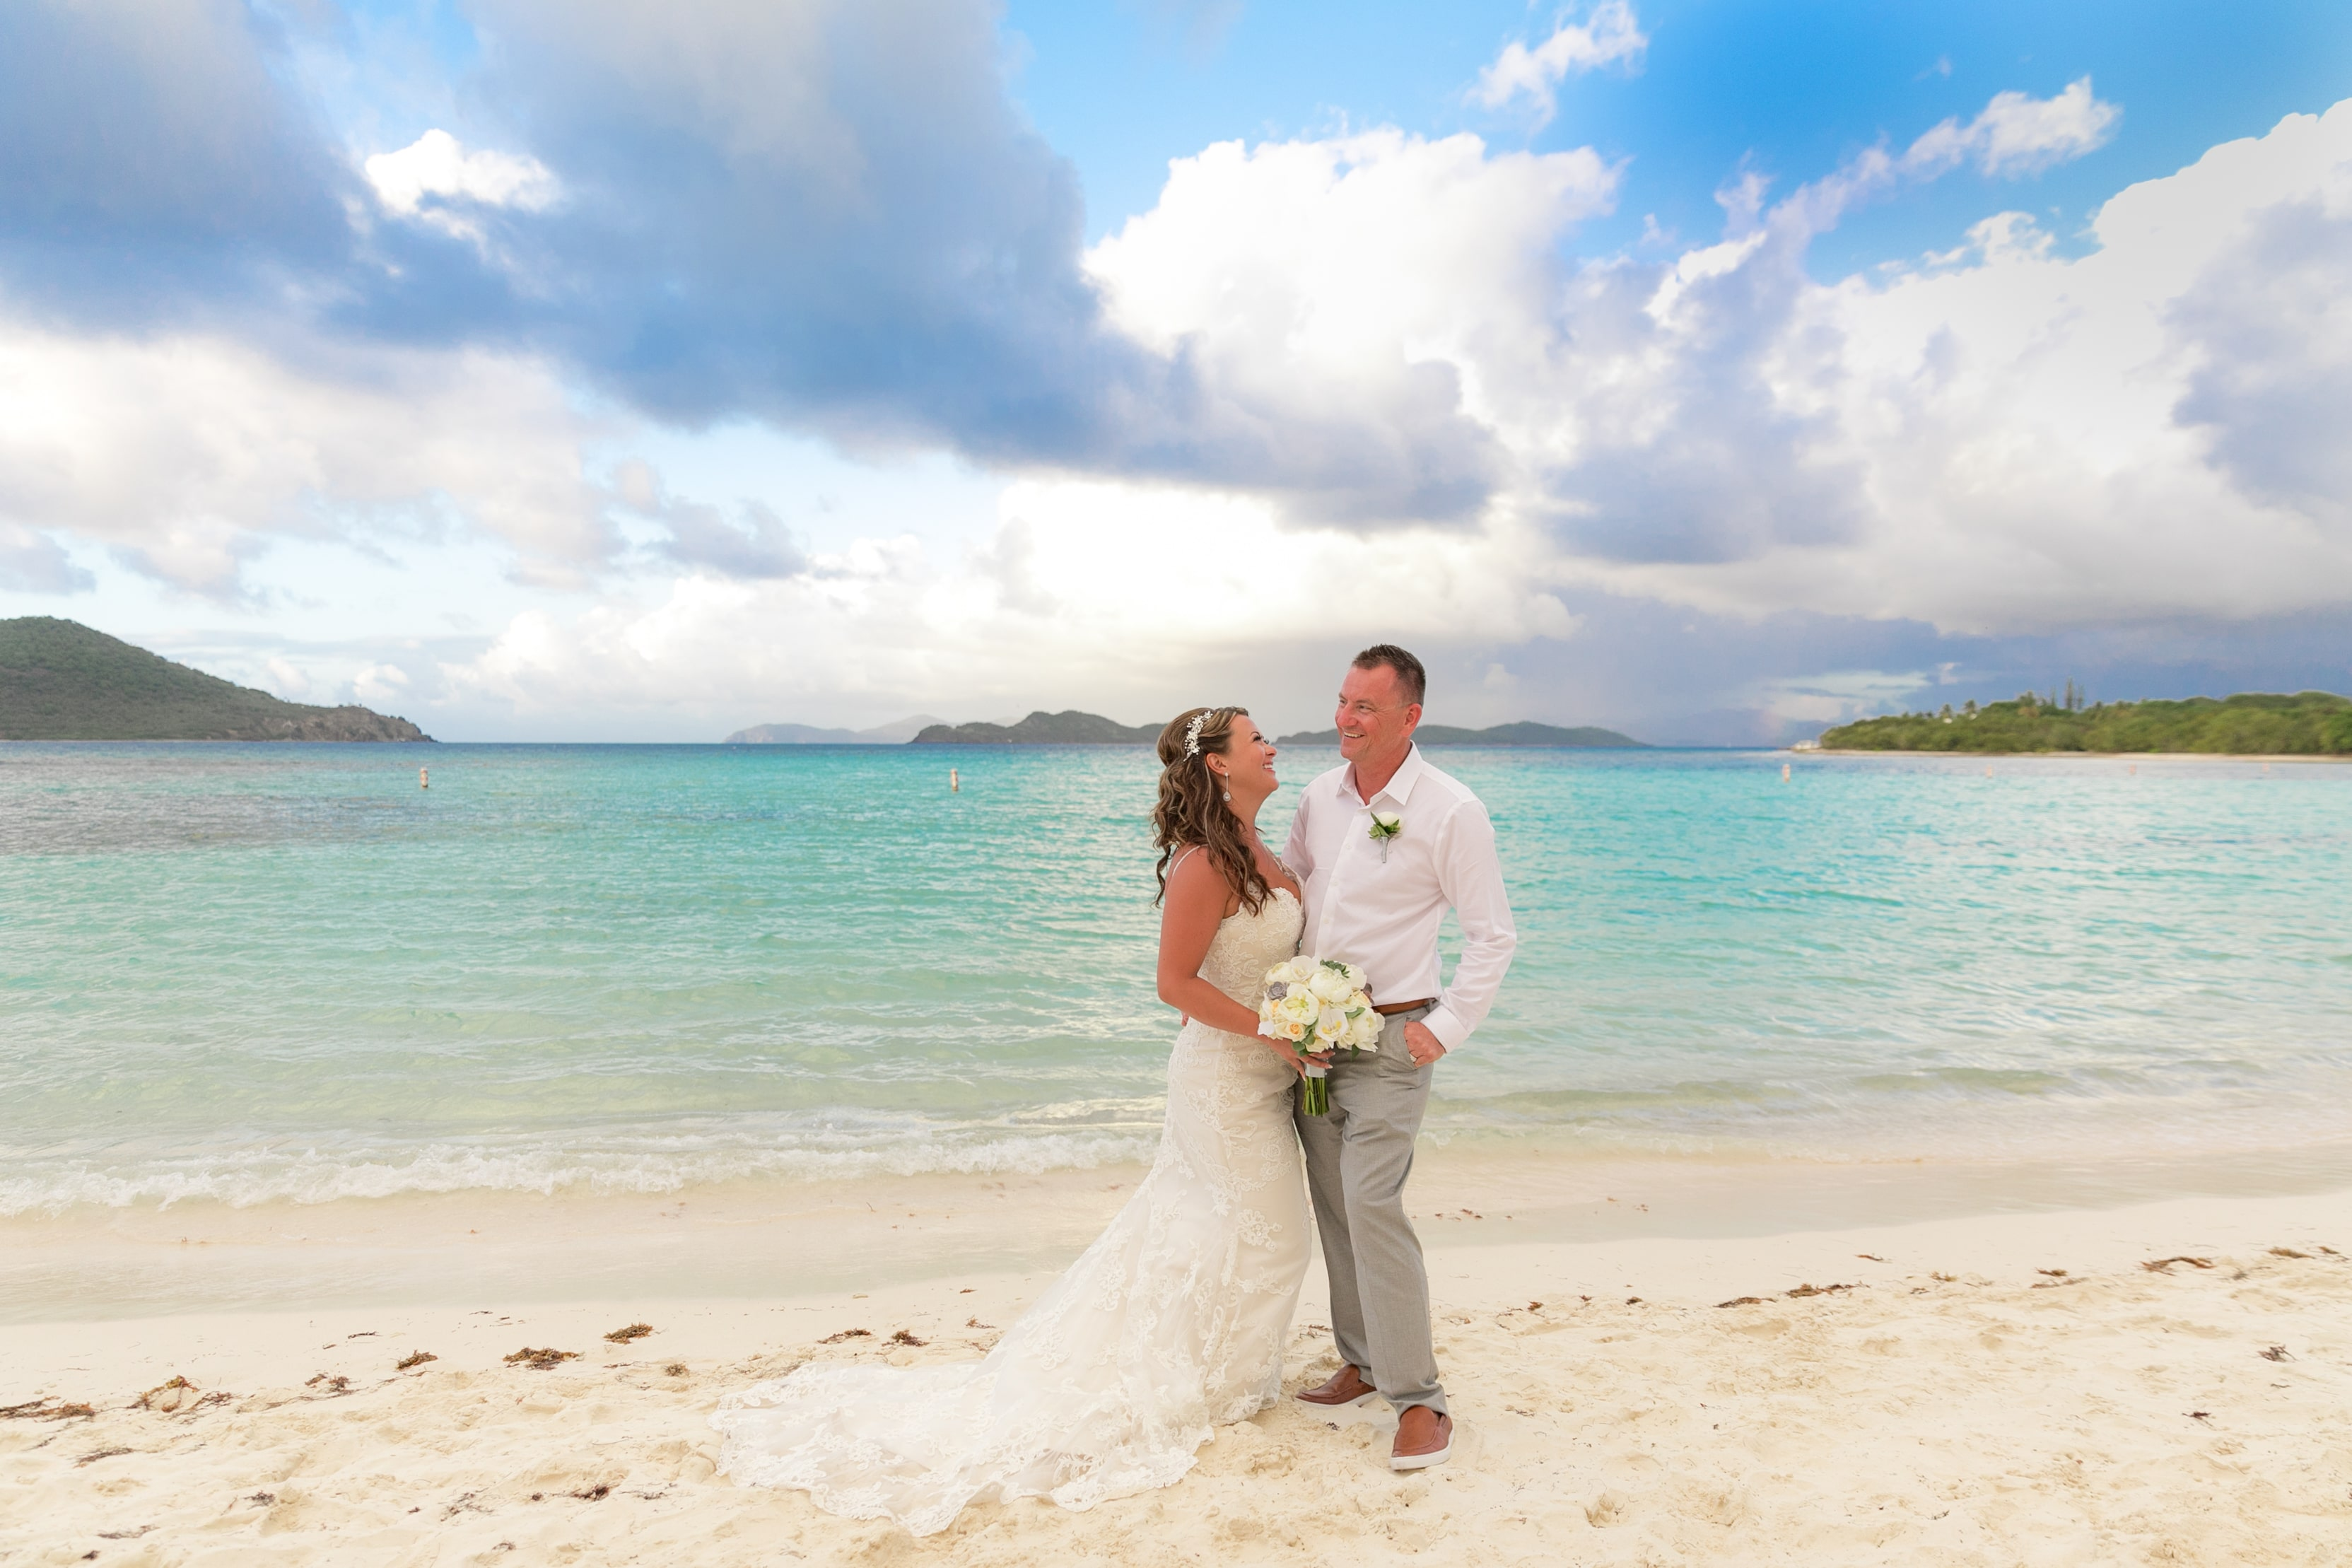 Lindquist Beach Wedding Love St Thomas Weddings